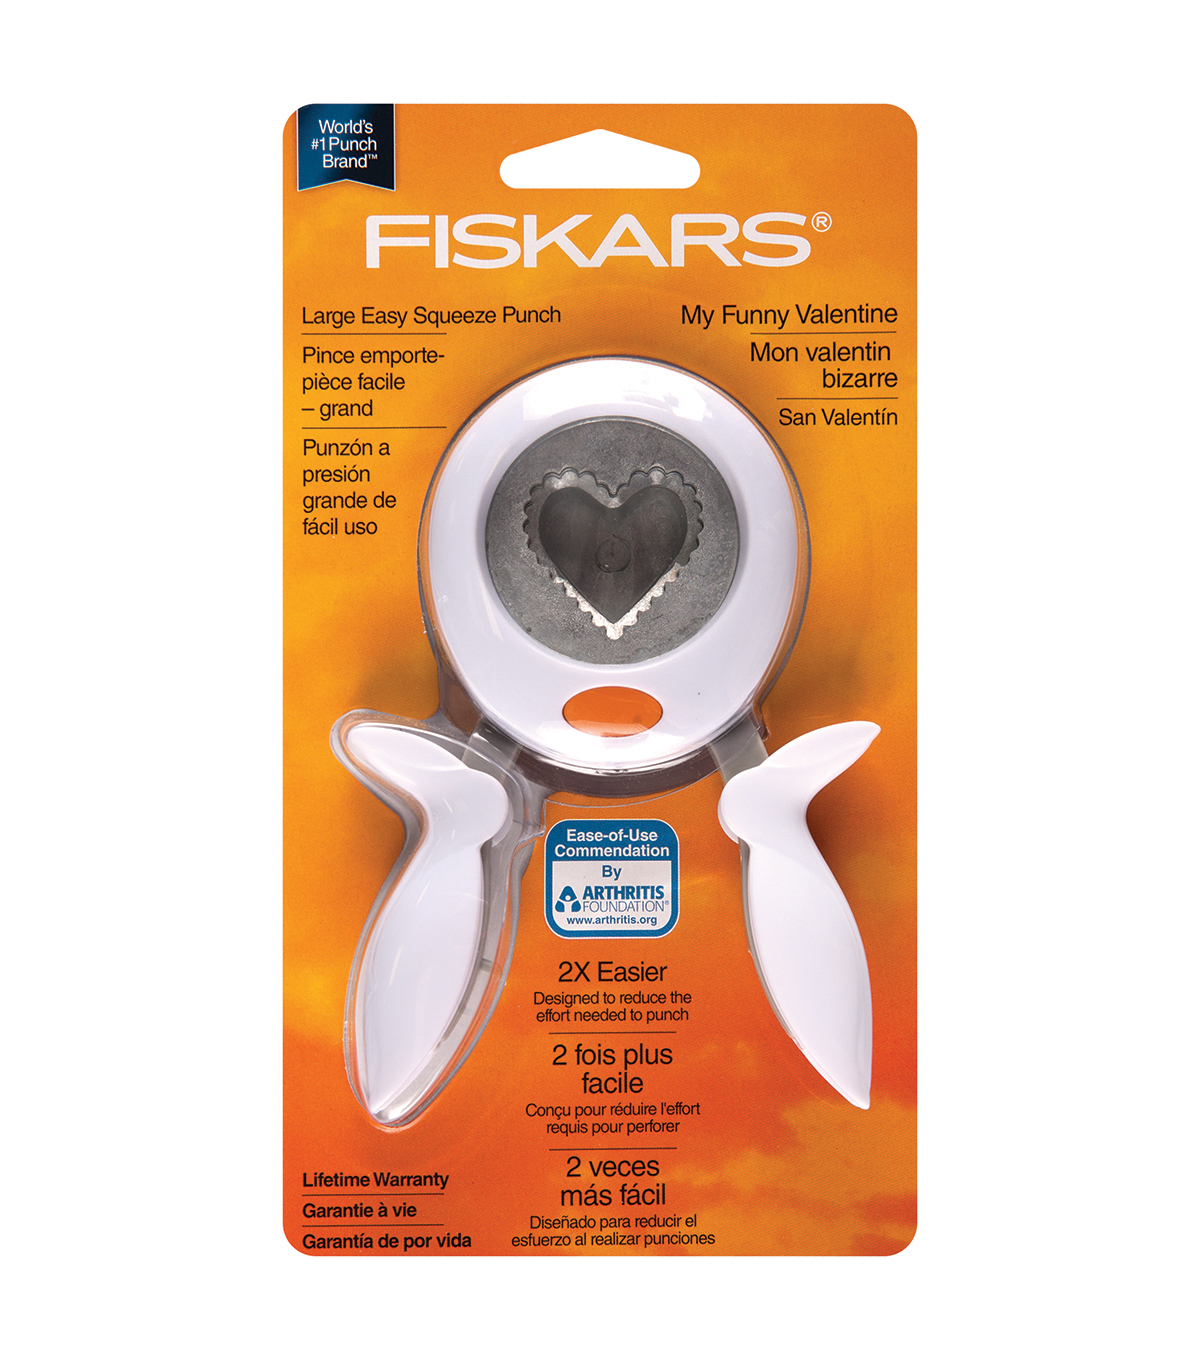 Fiskars Squeeze Punch, Large - My Funny Valentine